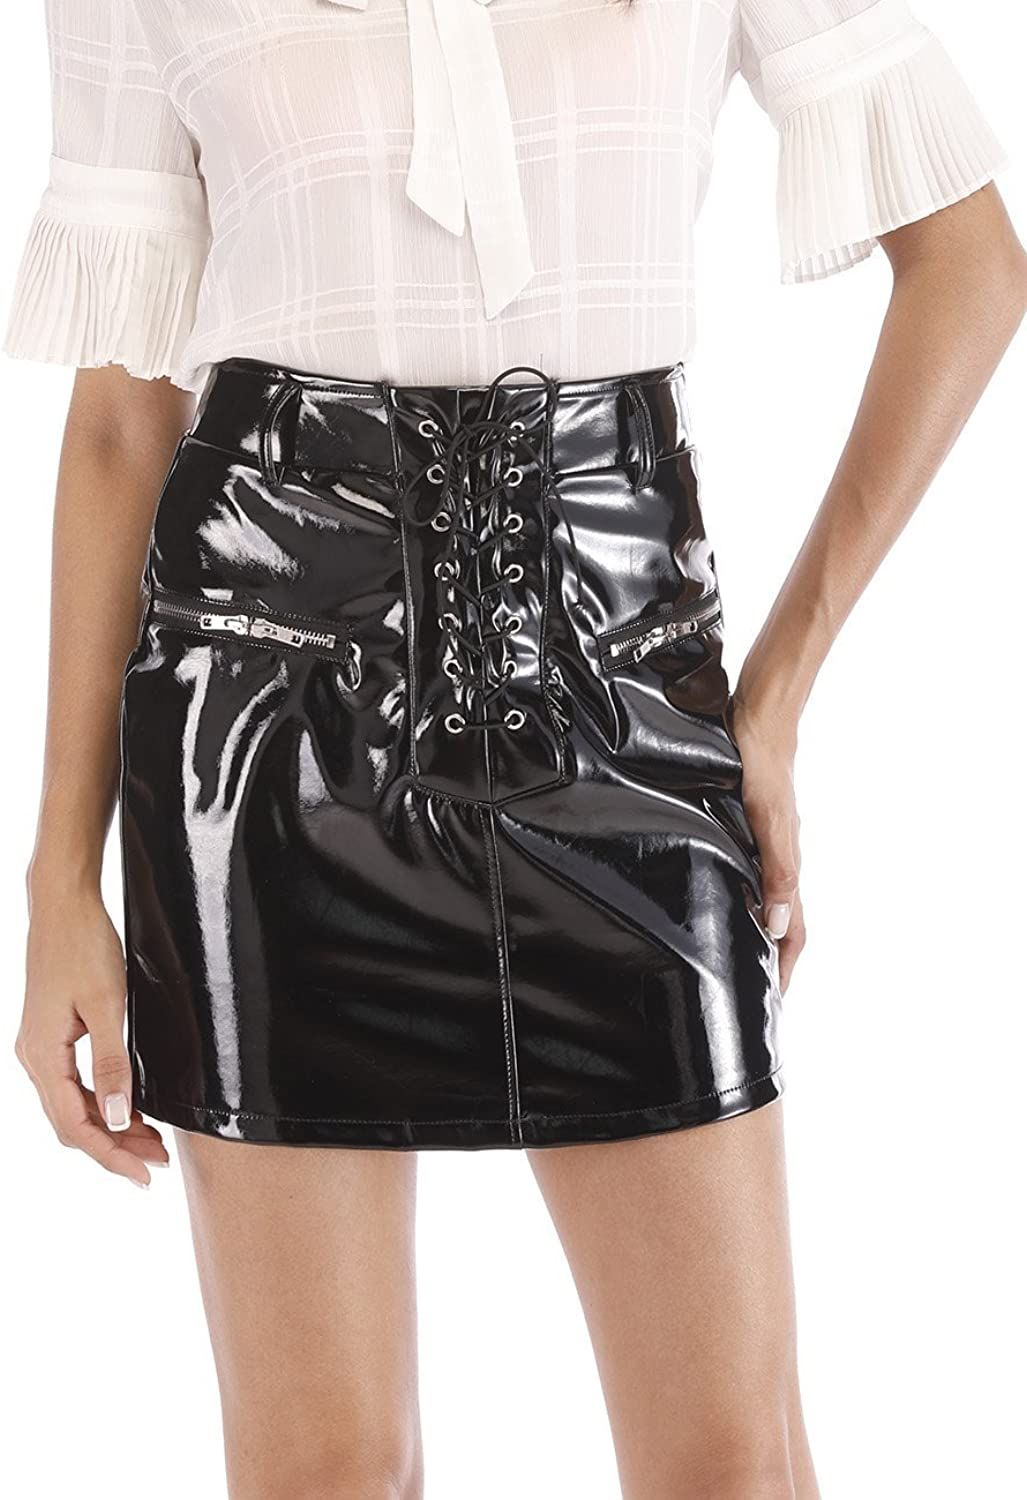 Agmibrelr Women's Laceup High Waisted Faux Leather Bodycon Mini Skirts with Pockets